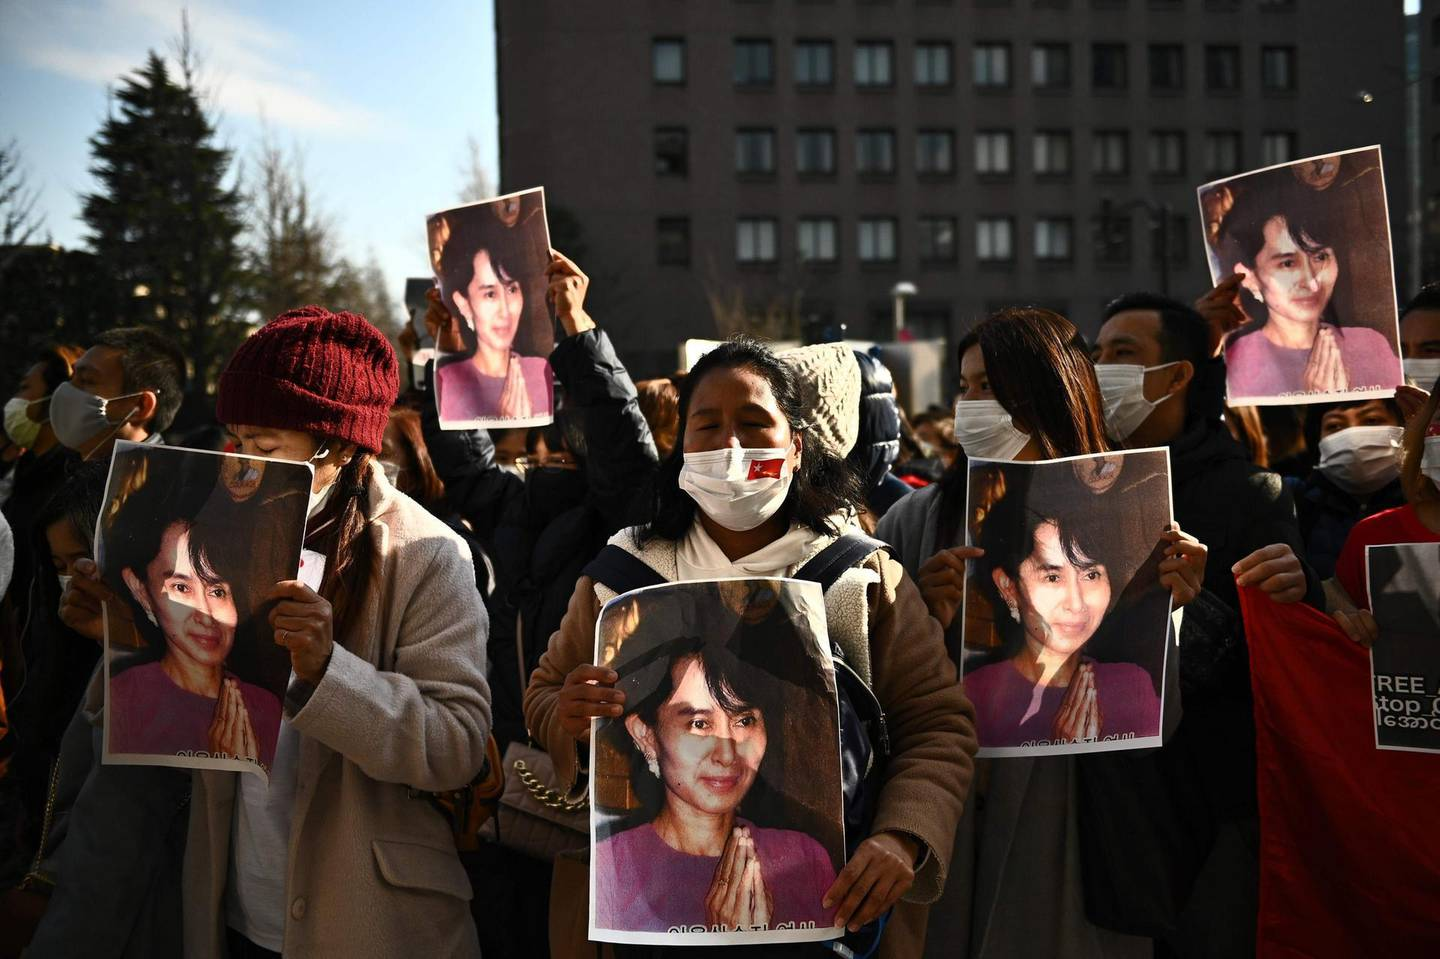 A group of Myanmar activists hold the portrait of Aung San Suu Kyi during a protest outside UN building in Tokyo on February 1, 2021 following a military coup in the country by a general after arresting civilian leader Aung San Suu Kyi and other senior officials. / AFP / Philip FONG